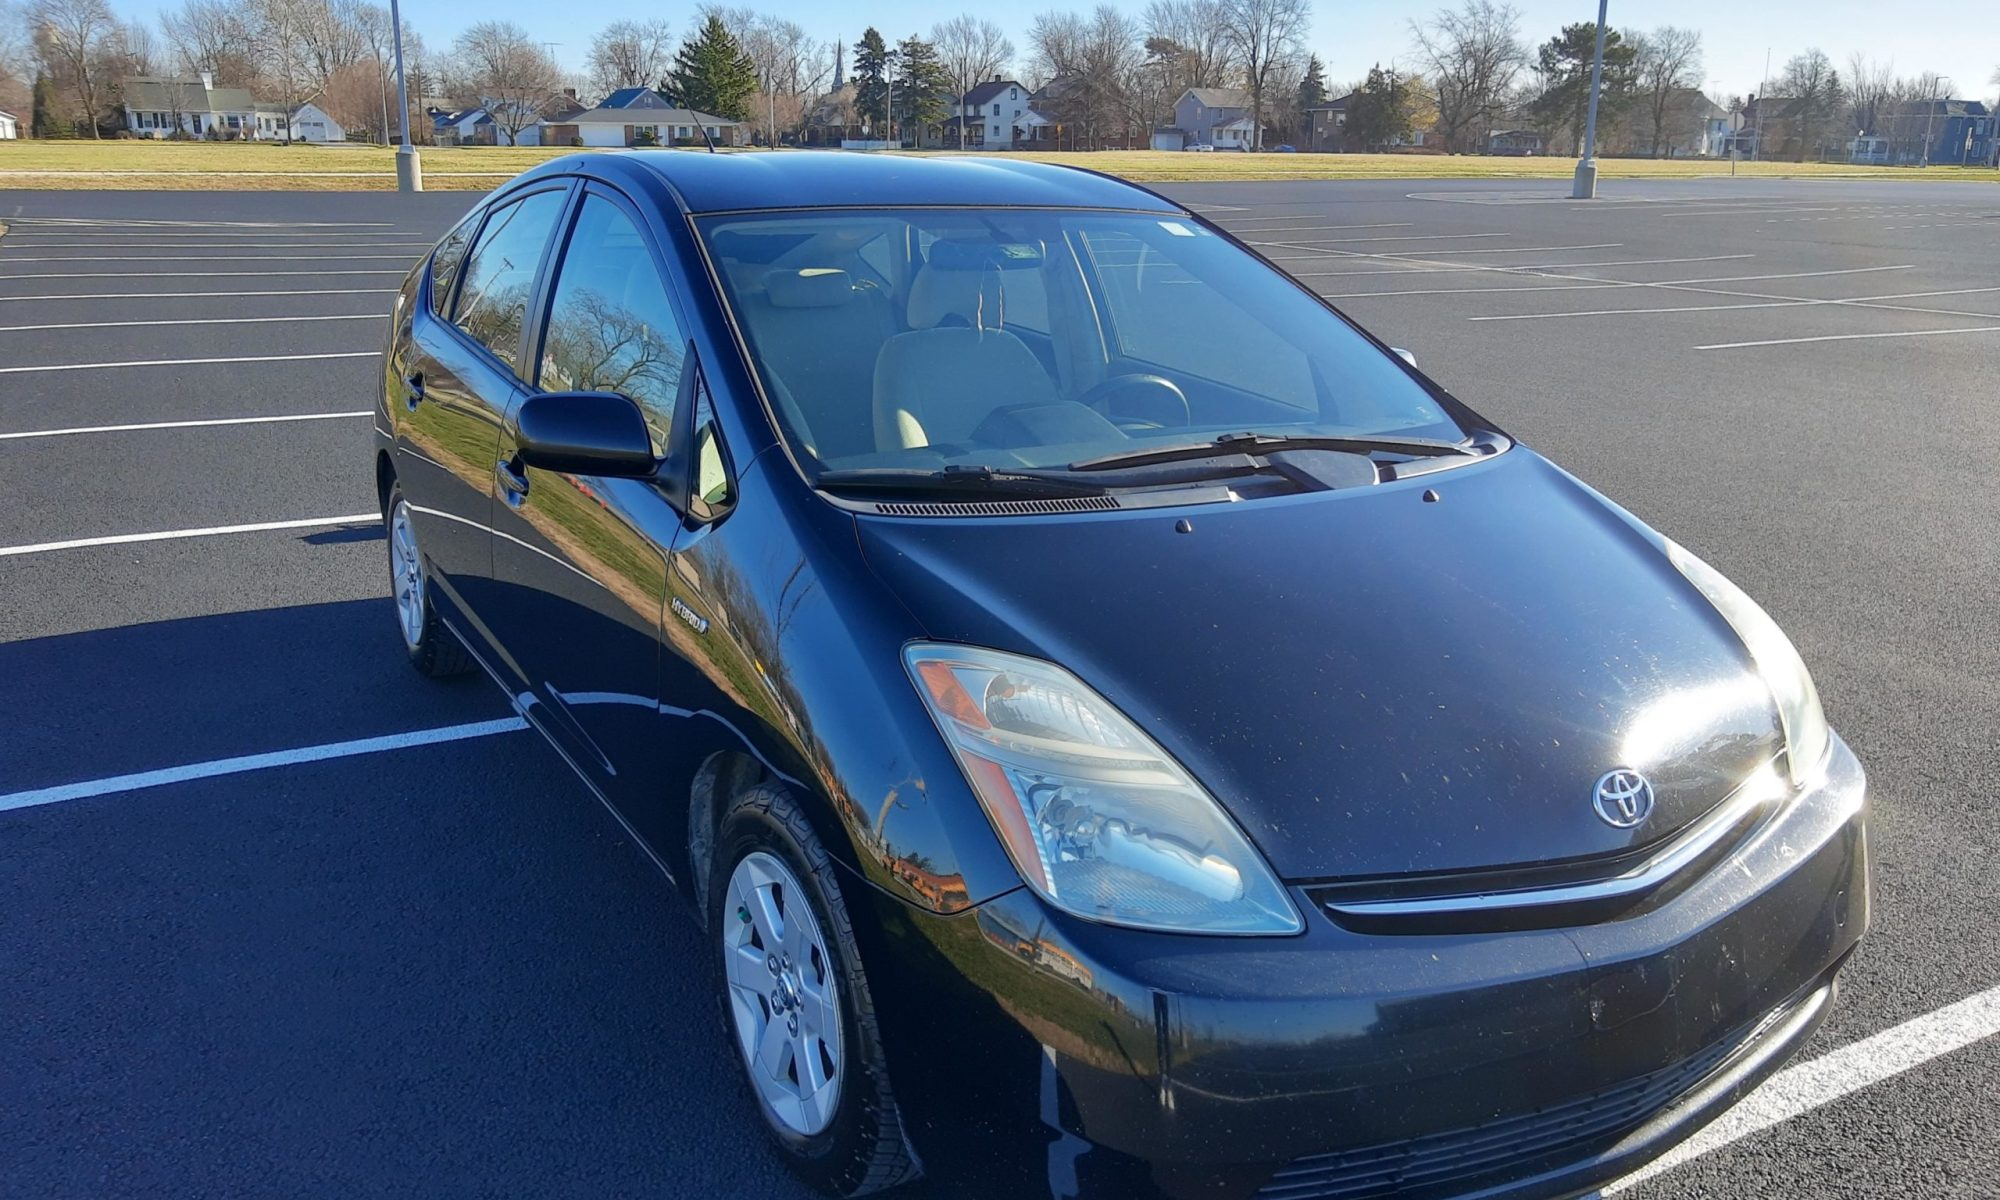 Our 2006 Toyota Prius